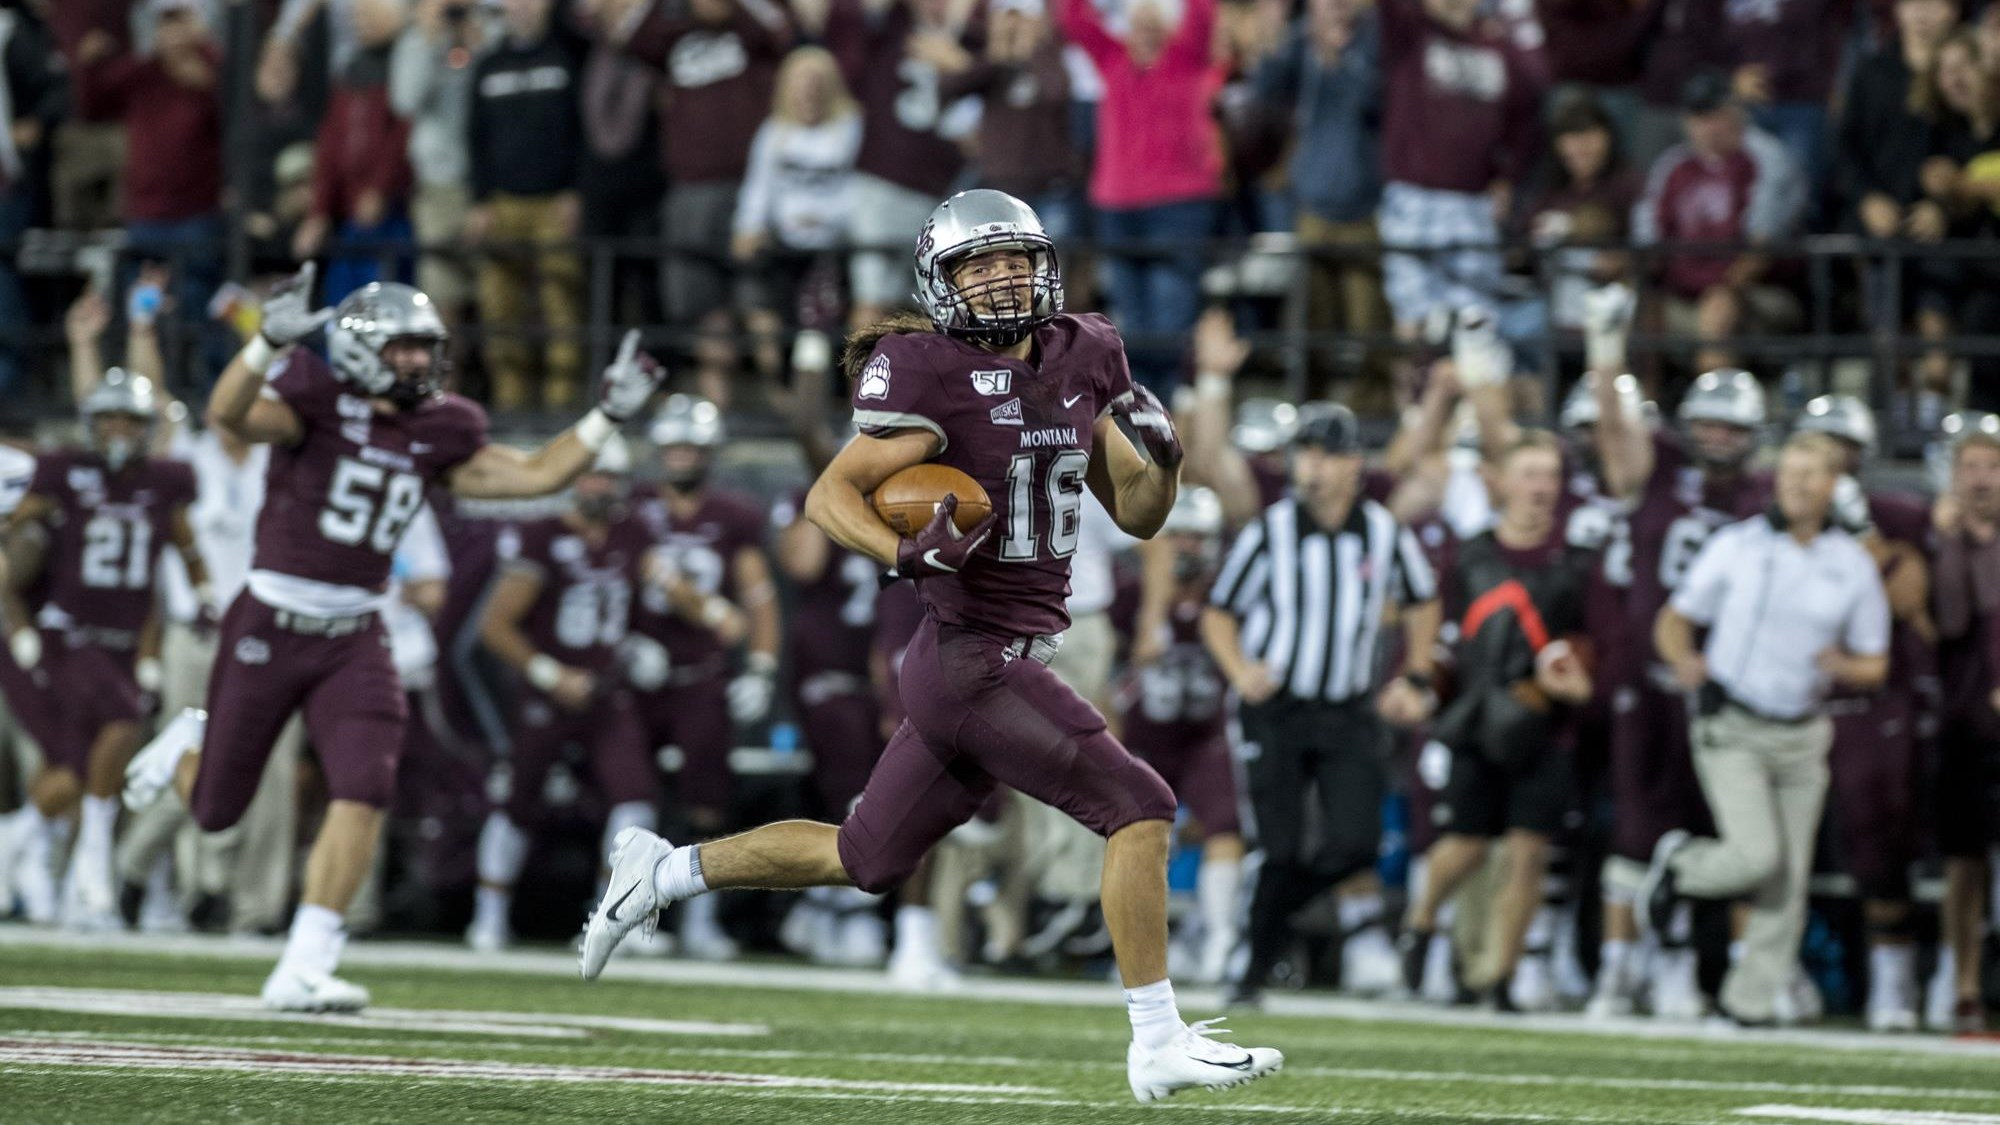 Louie-McGee named ROOT Sports Big Sky Player of the Week